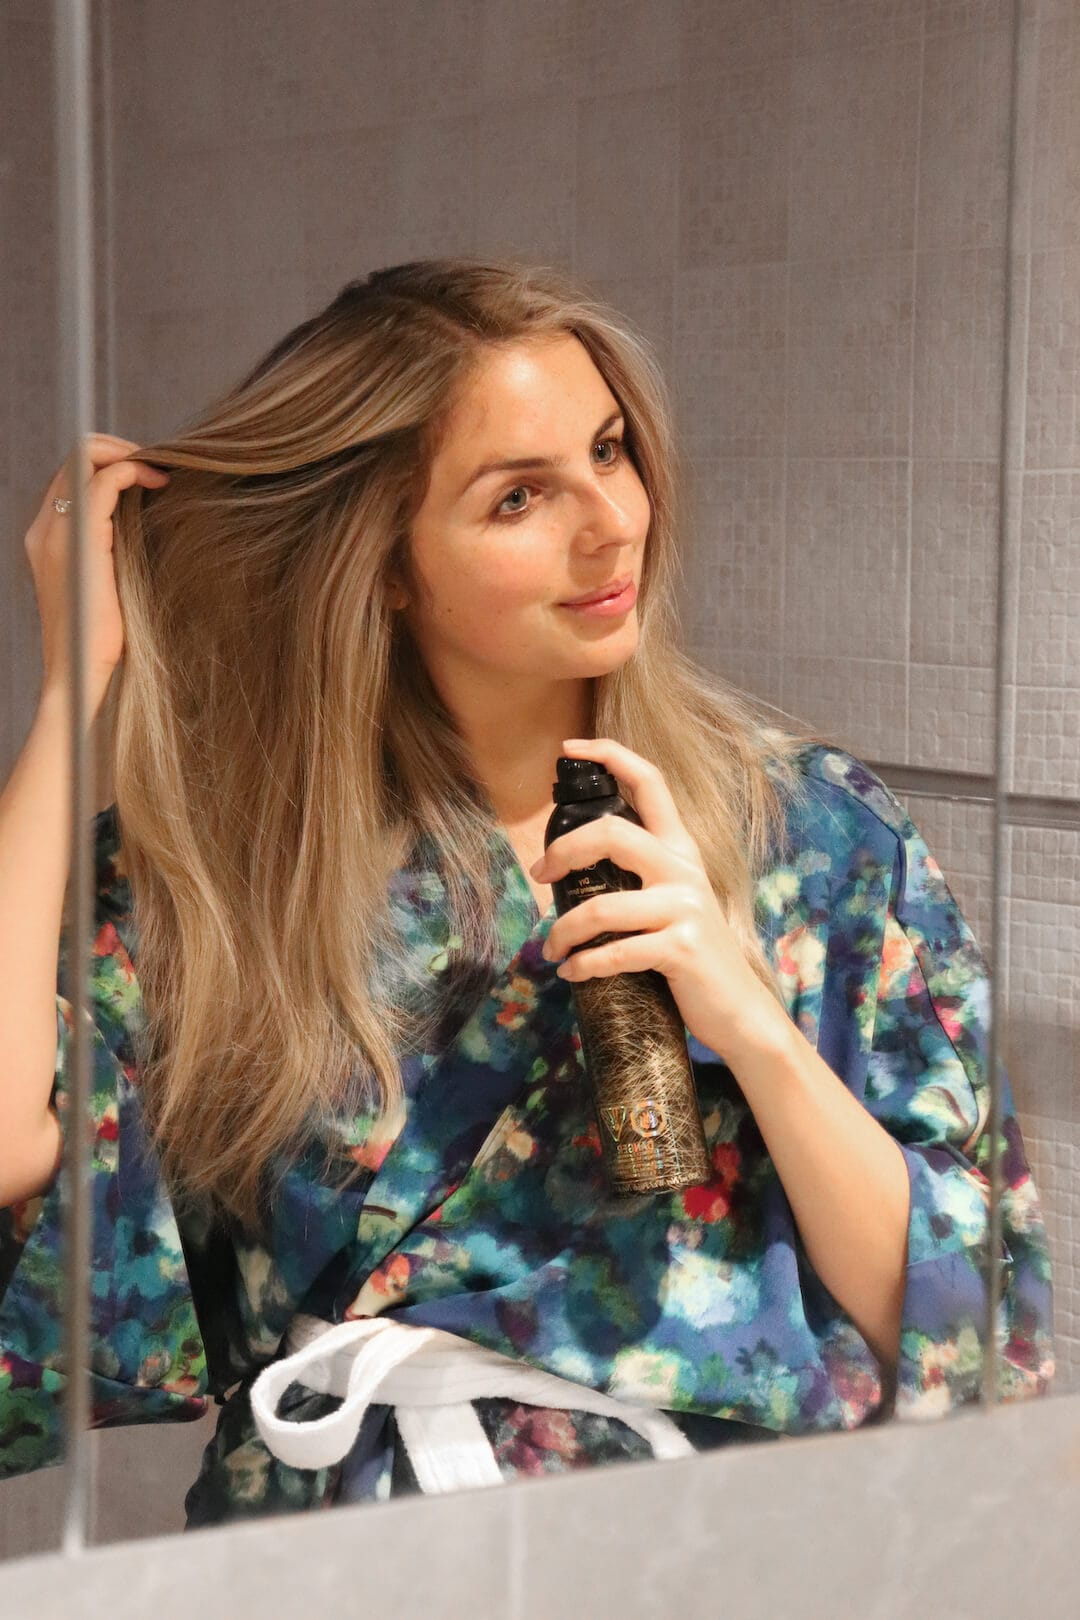 guide-to-get-clean-looking-hair-after-working-out-without-washing